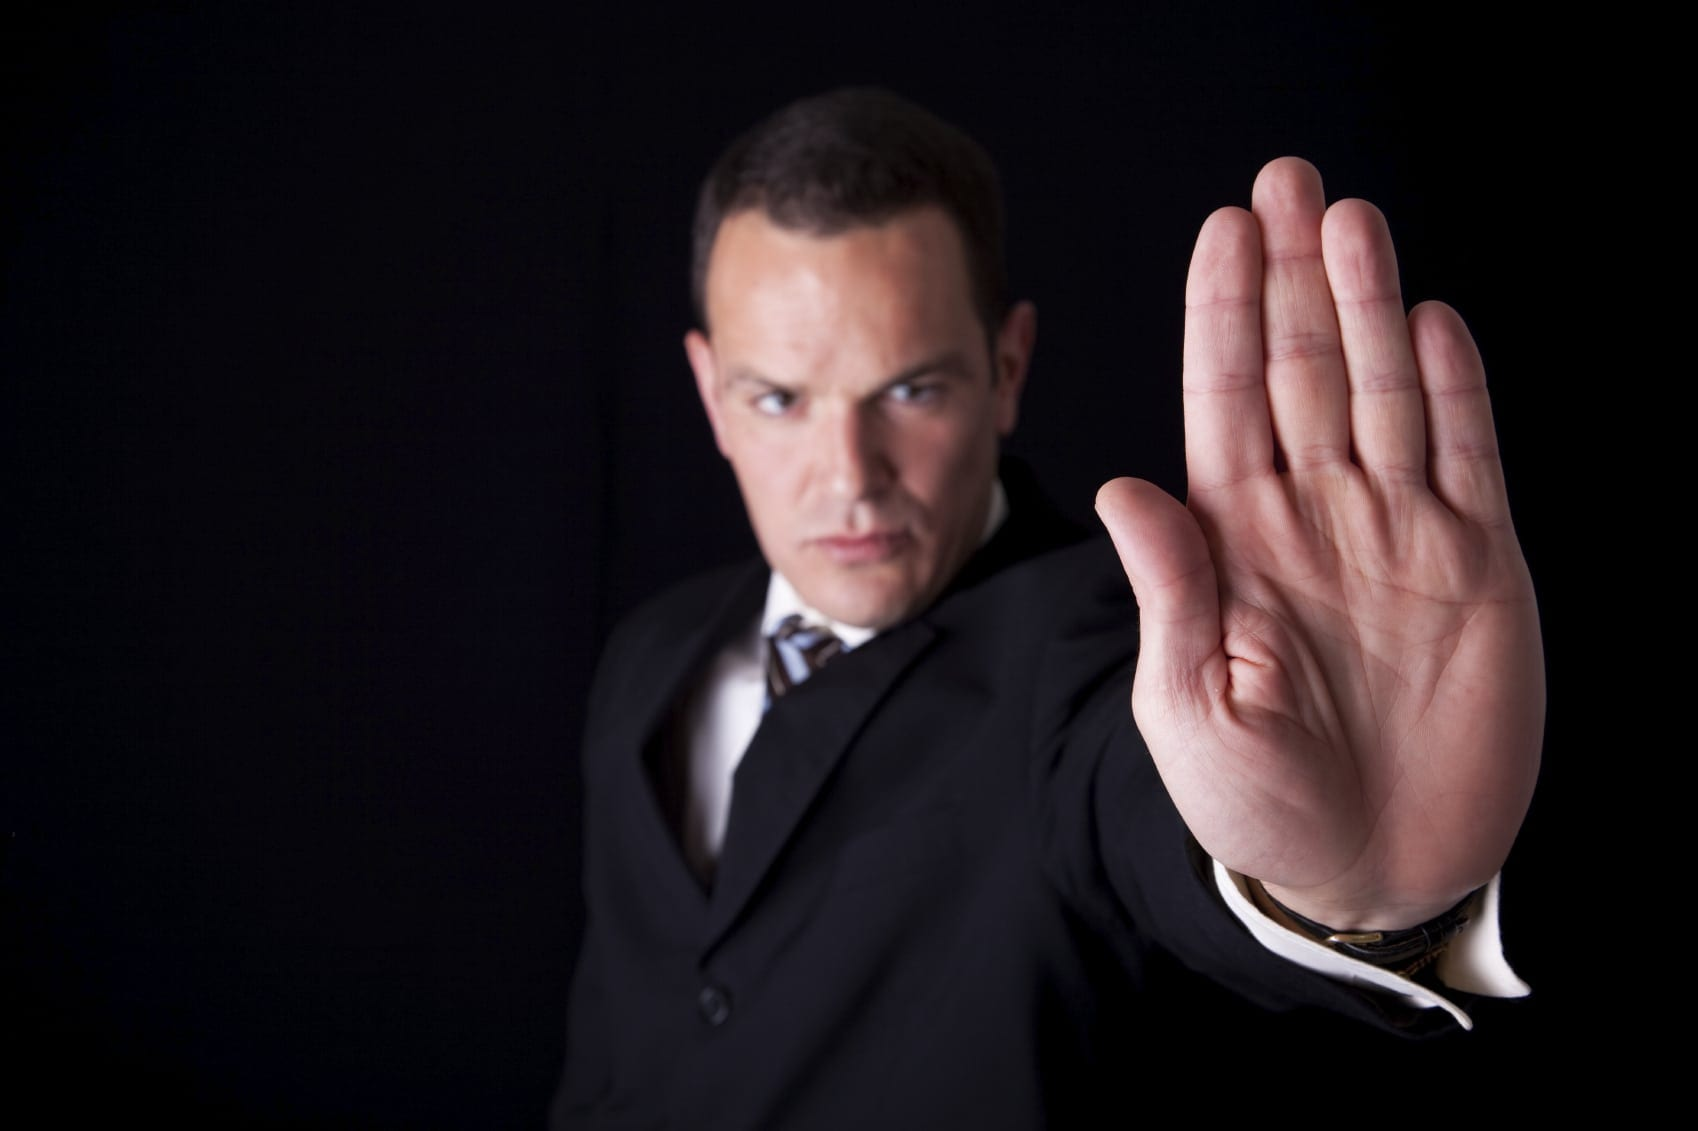 Lawyer Holding Hand Up To Stop Progression